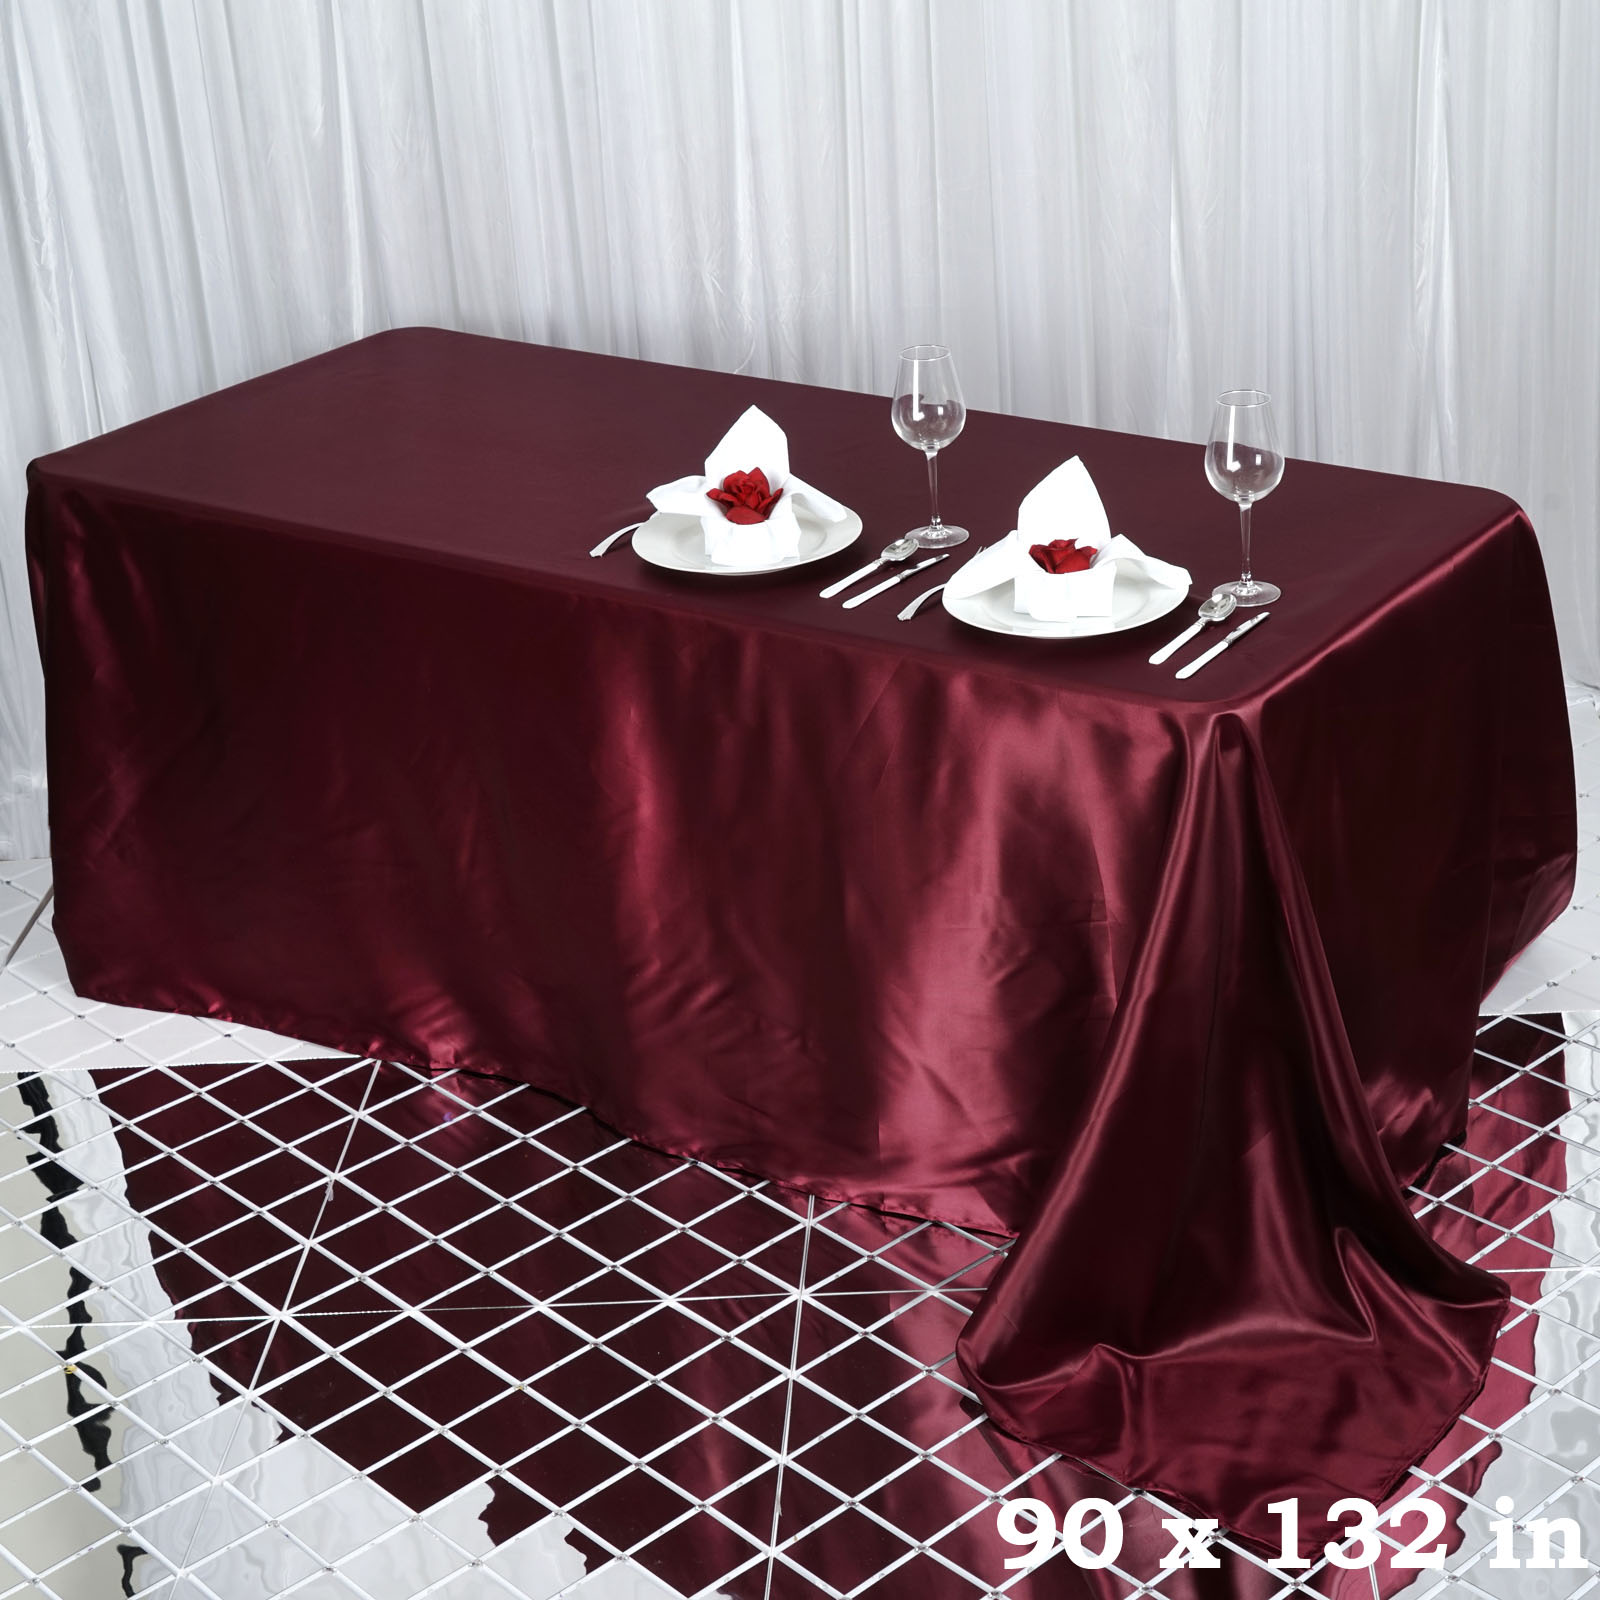 90x132-034-Rectangle-Satin-Tablecloth-For-Wedding-Party-Banquet-Events-Decoration thumbnail 11